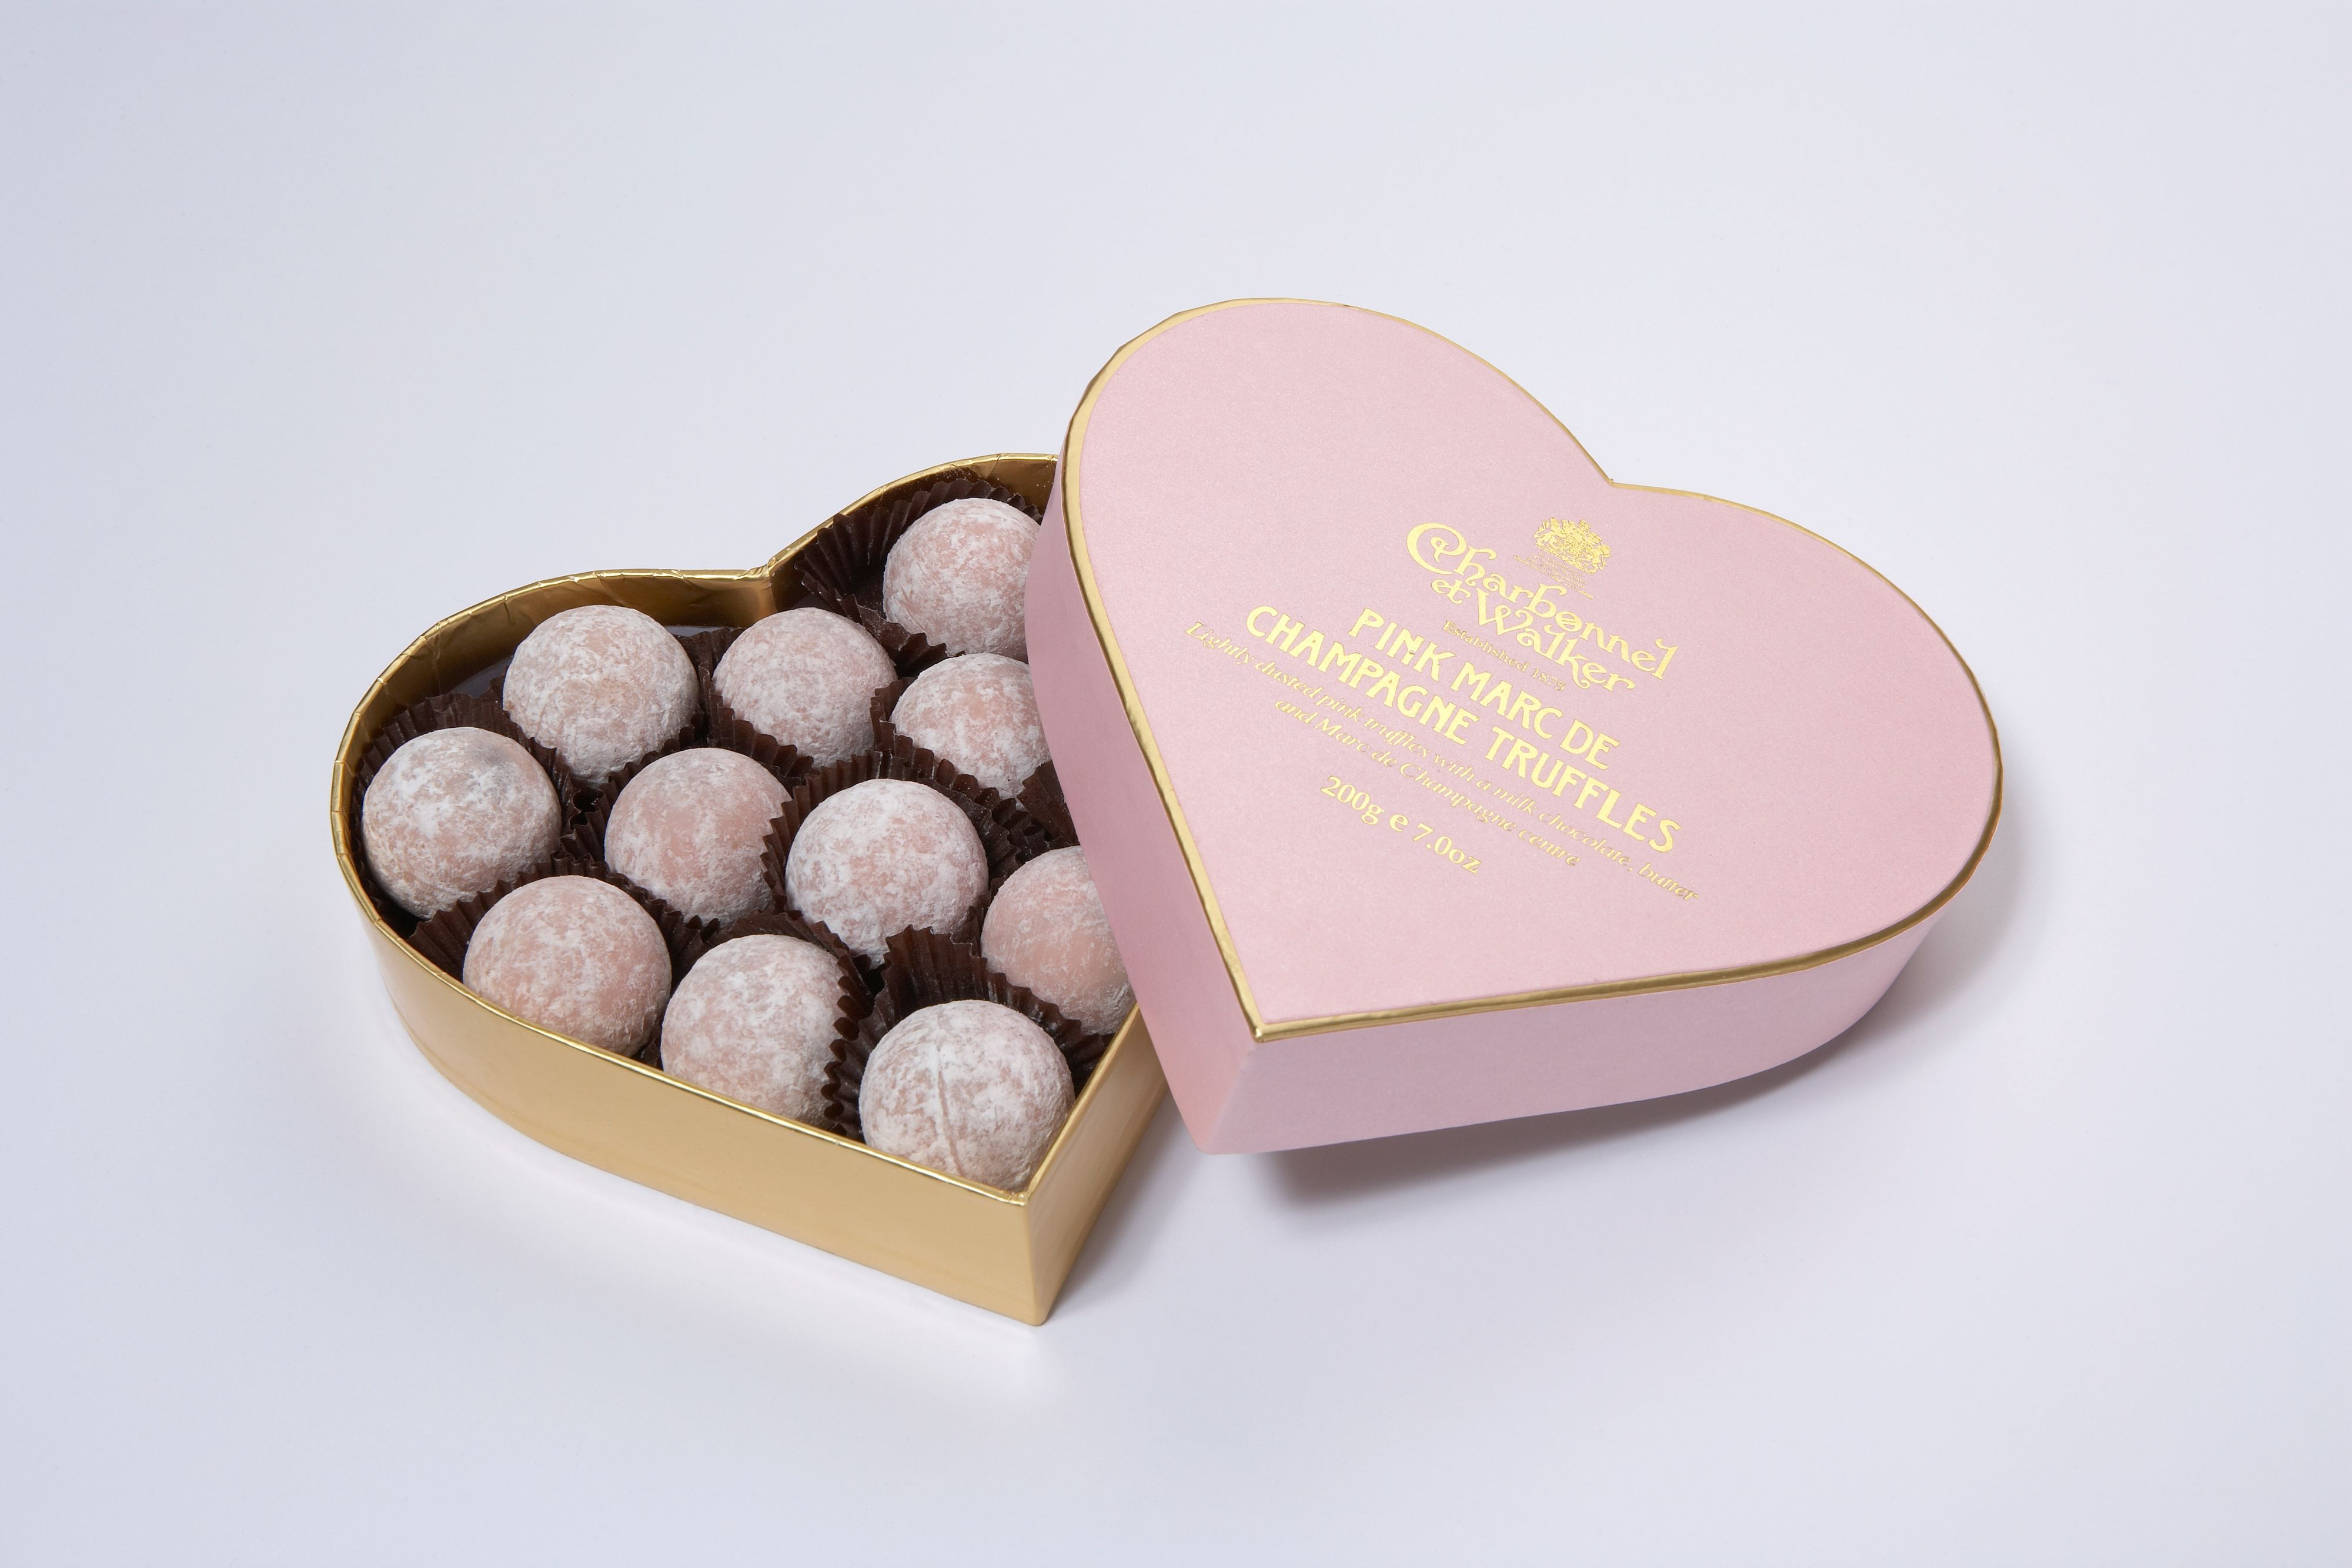 Pink Marc de Champagne truffles in a heart box